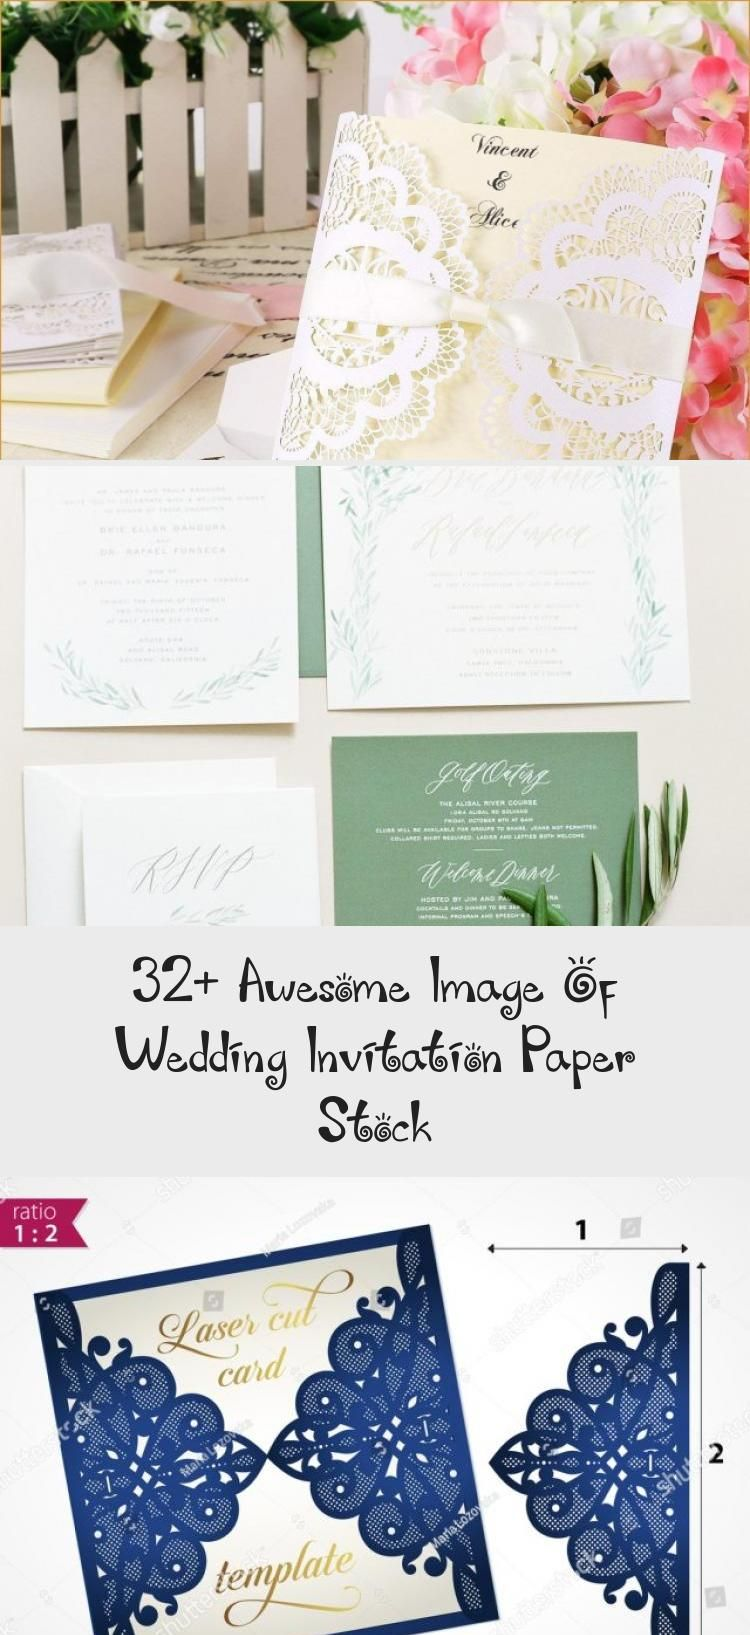 32 Awesome Image Of Wedding Invitation Paper Stock Wedding Invitations Boho Wedding Invitations Wedding Invitation Paper